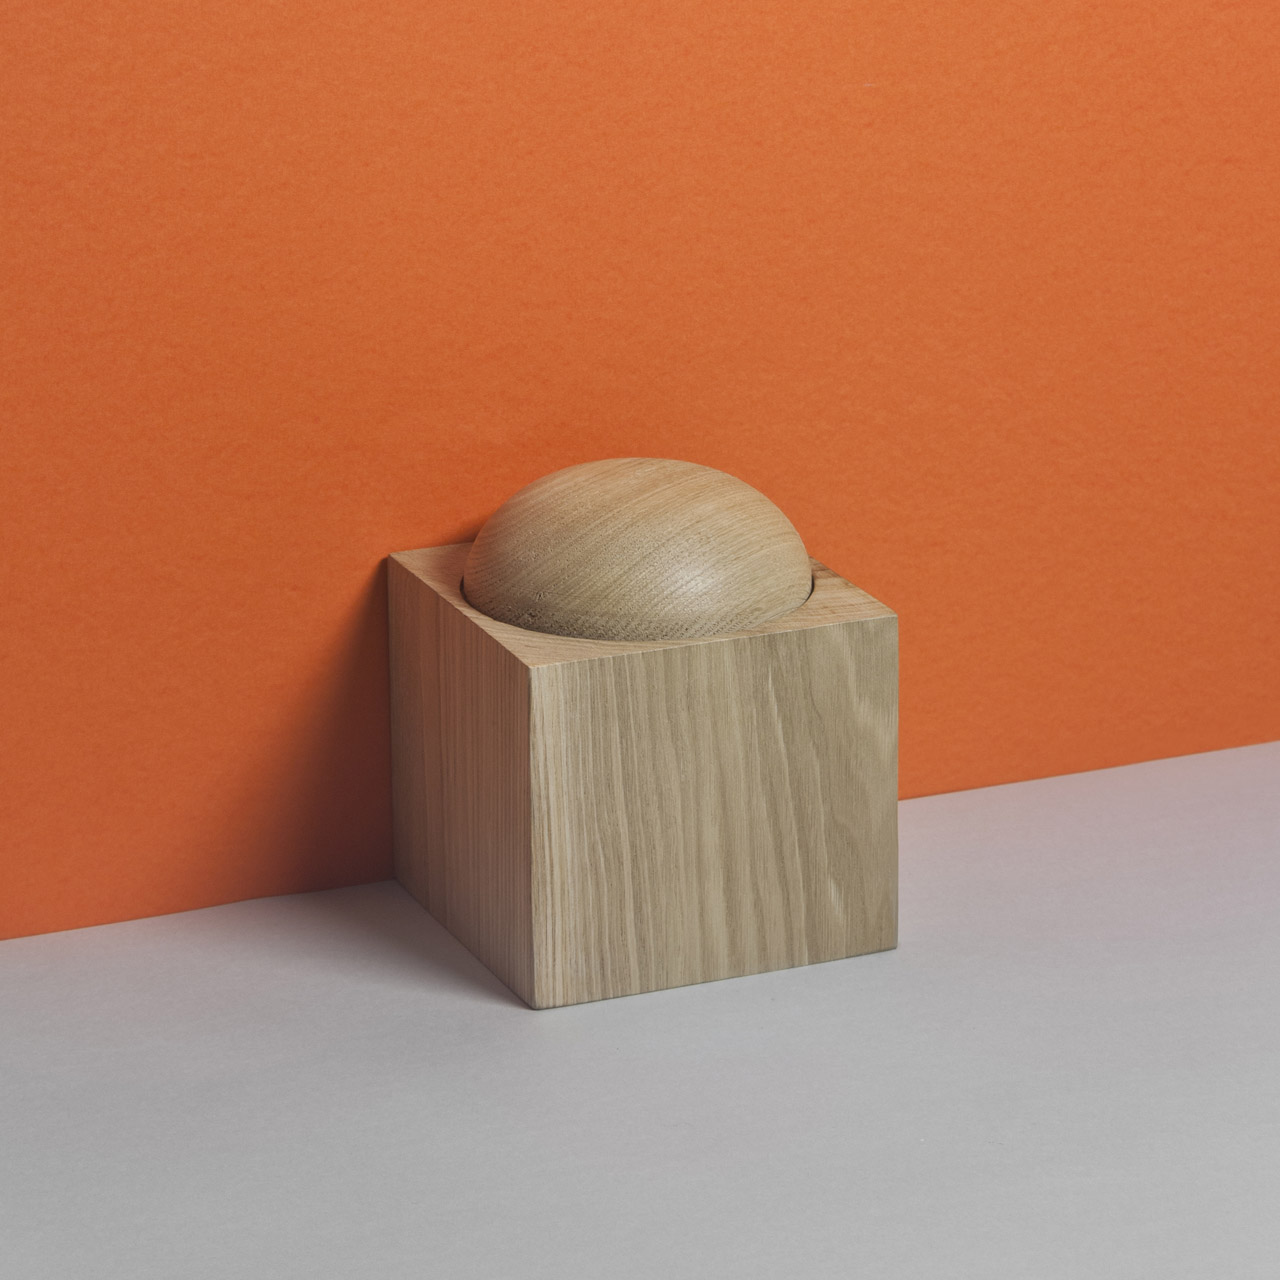 Aya wooden container from AVLU collection by DAY Studio. Wooden containers and boxes, Bebek, Aya and Galata inspired and named after three of the city's monumental buildings: Imperial Mosque, Hagia Sofia and Galata Tower. Istanbul Design Week @ DXBDW.